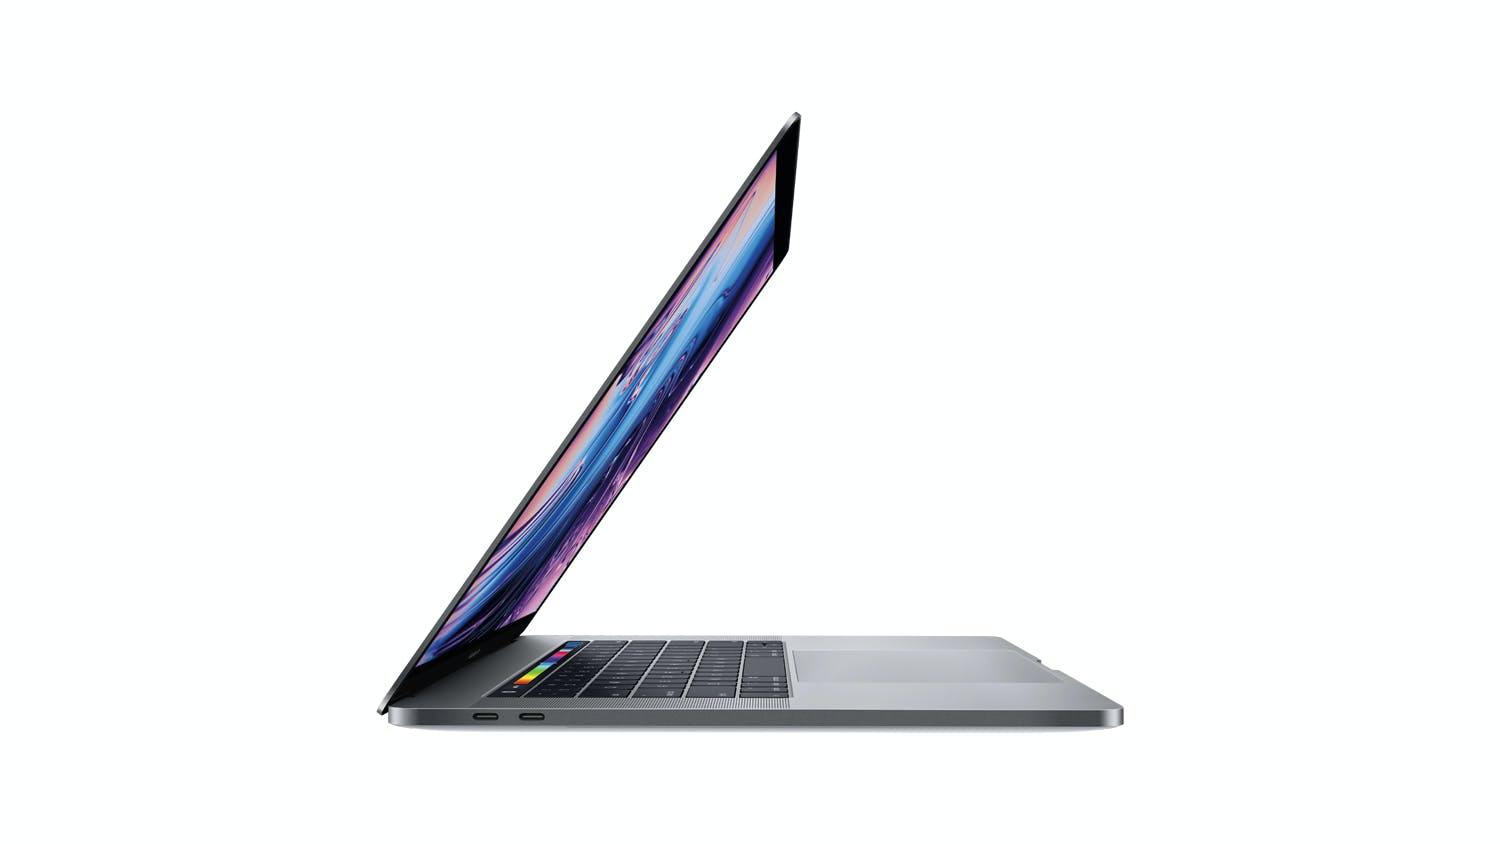 59c73a9d75d972 MacBook Pro with Touch Bar 15